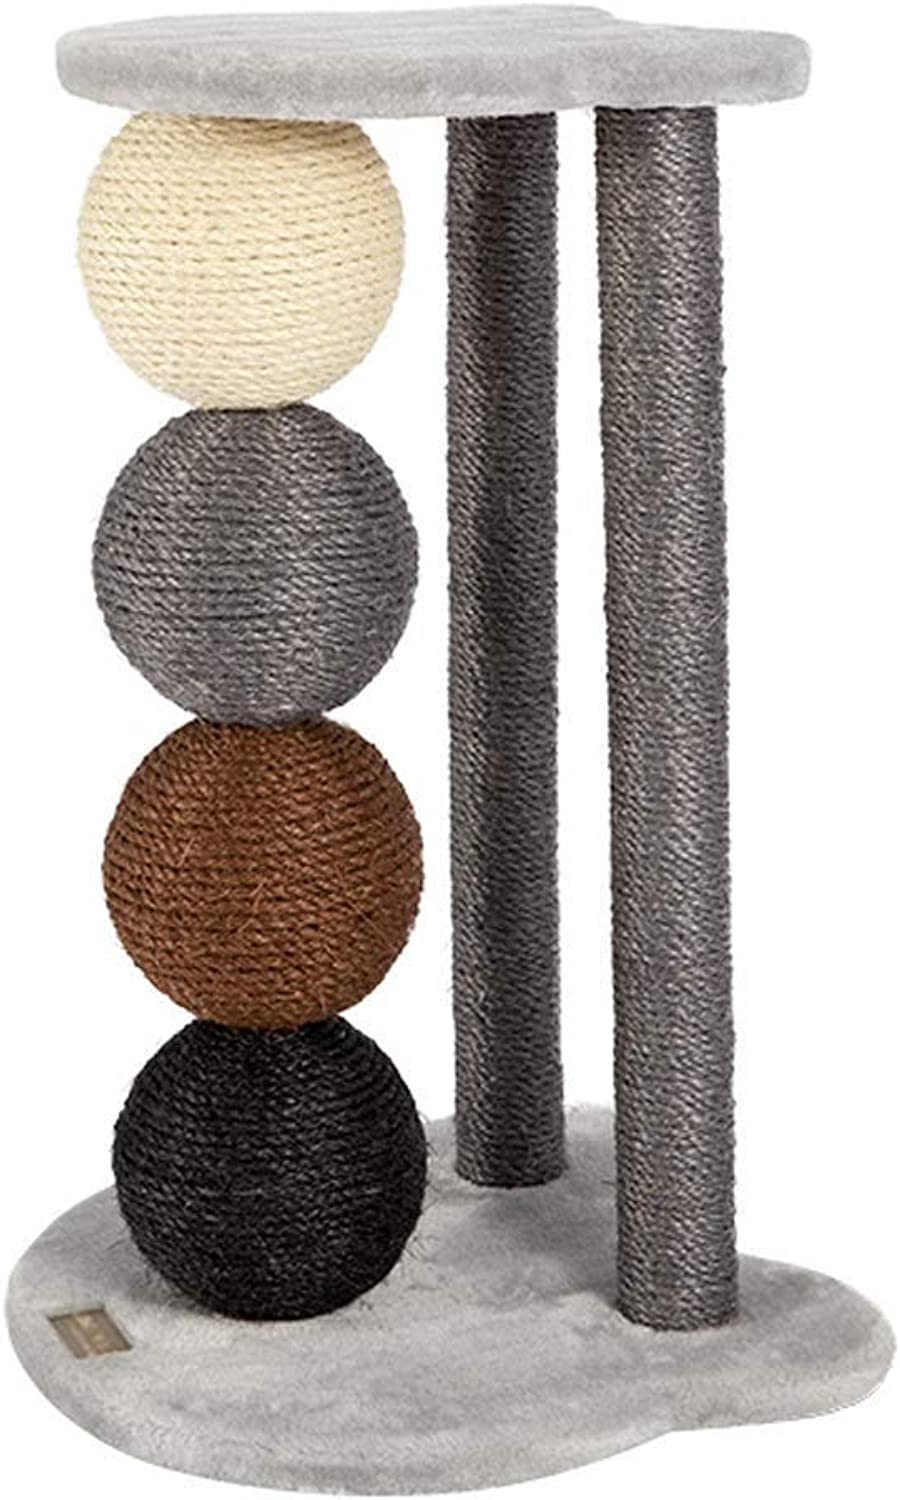 Cat Playing Tower, Cat Tree, Cat Climbing Frame, Sisal Column Pet Toy with 4 Sisal Ball